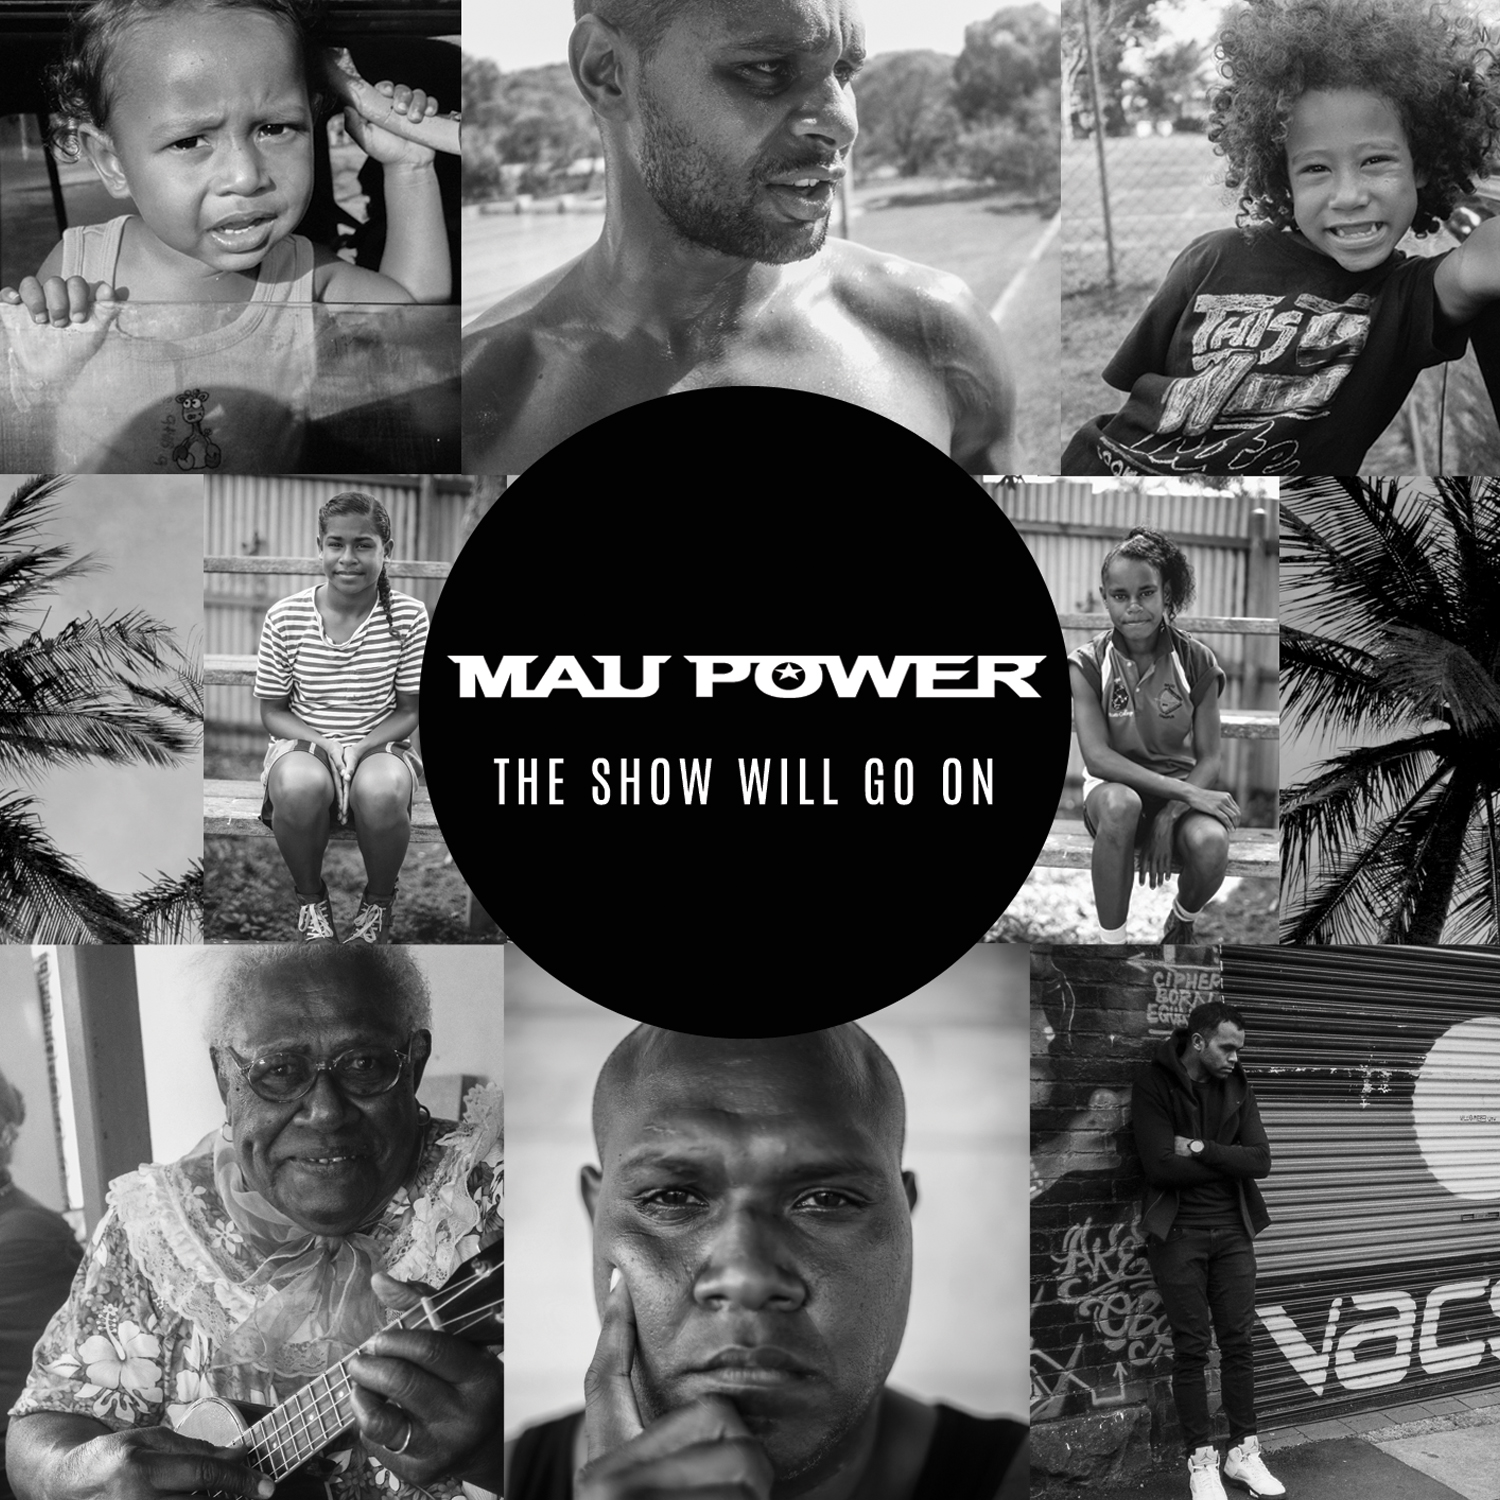 Mau Power - The Show Will Go On